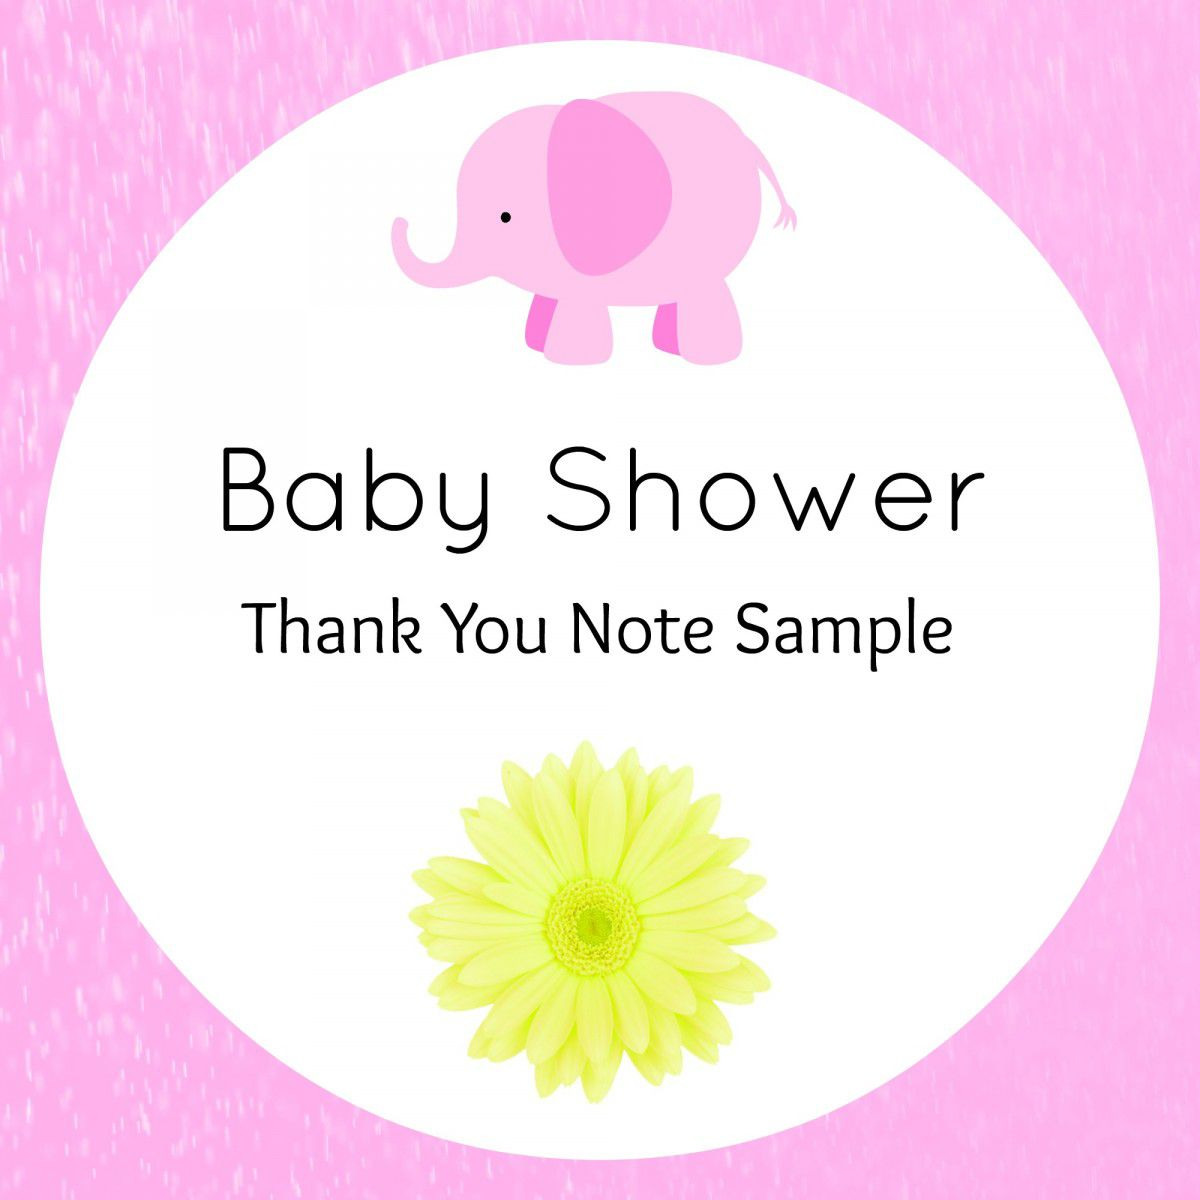 005 Awesome Thank You Note Template Baby Shower Sample  Card Free For Letter GiftFull